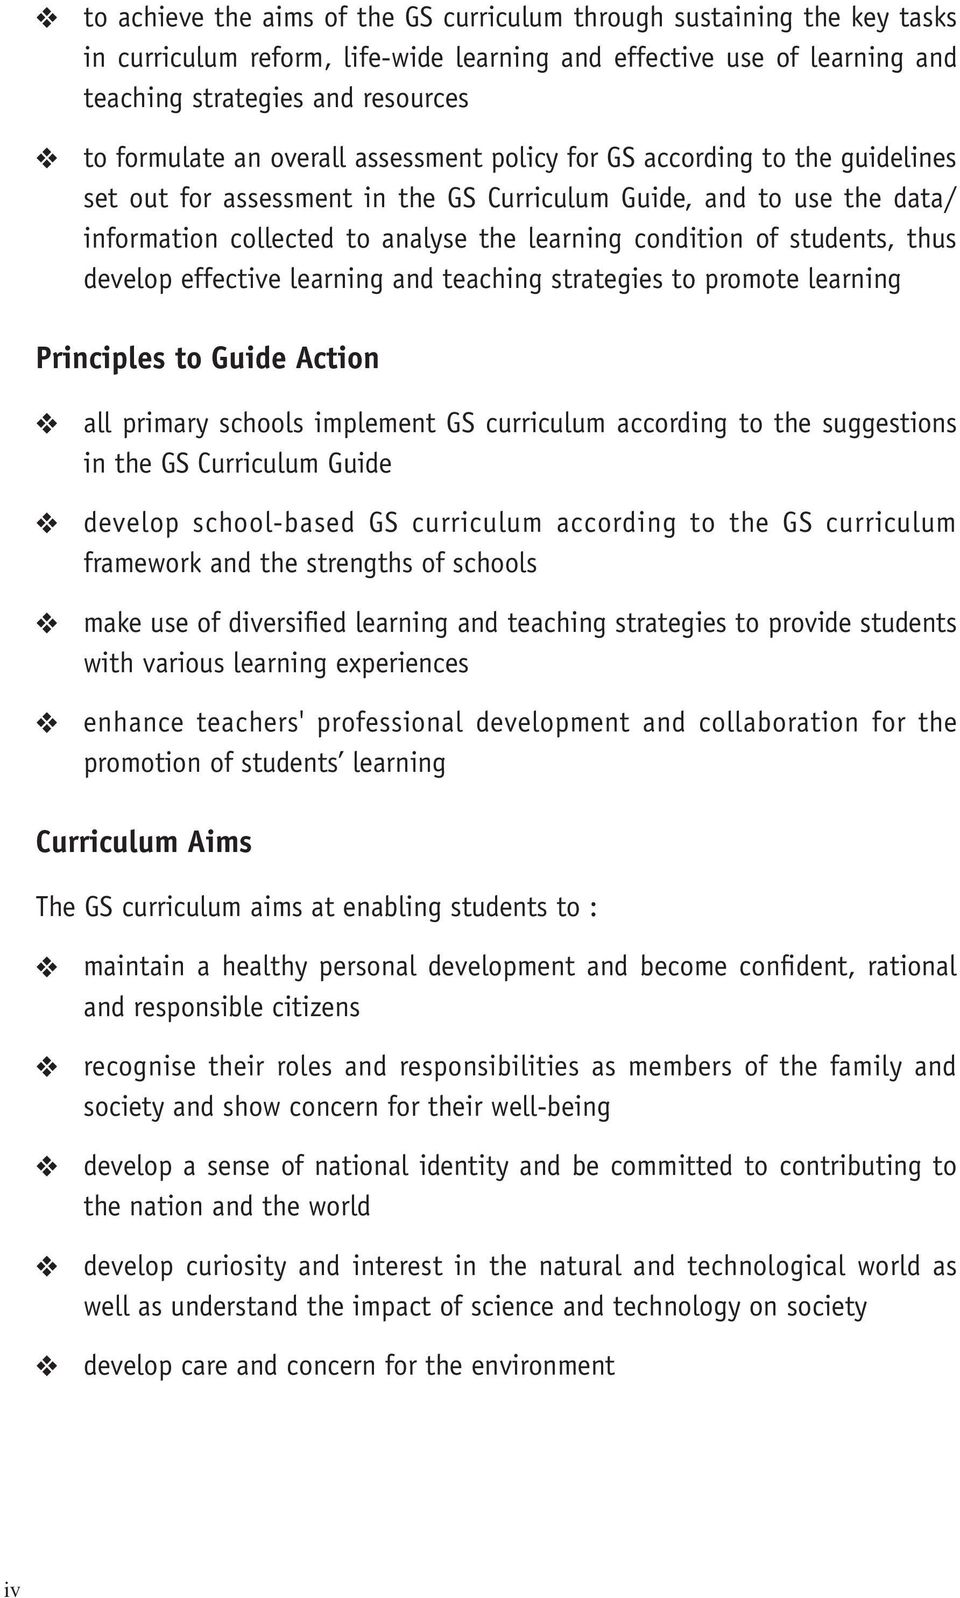 students, thus develop effective learning and teaching strategies to promote learning Principles to Guide Action all primary schools implement GS curriculum according to the suggestions in the GS